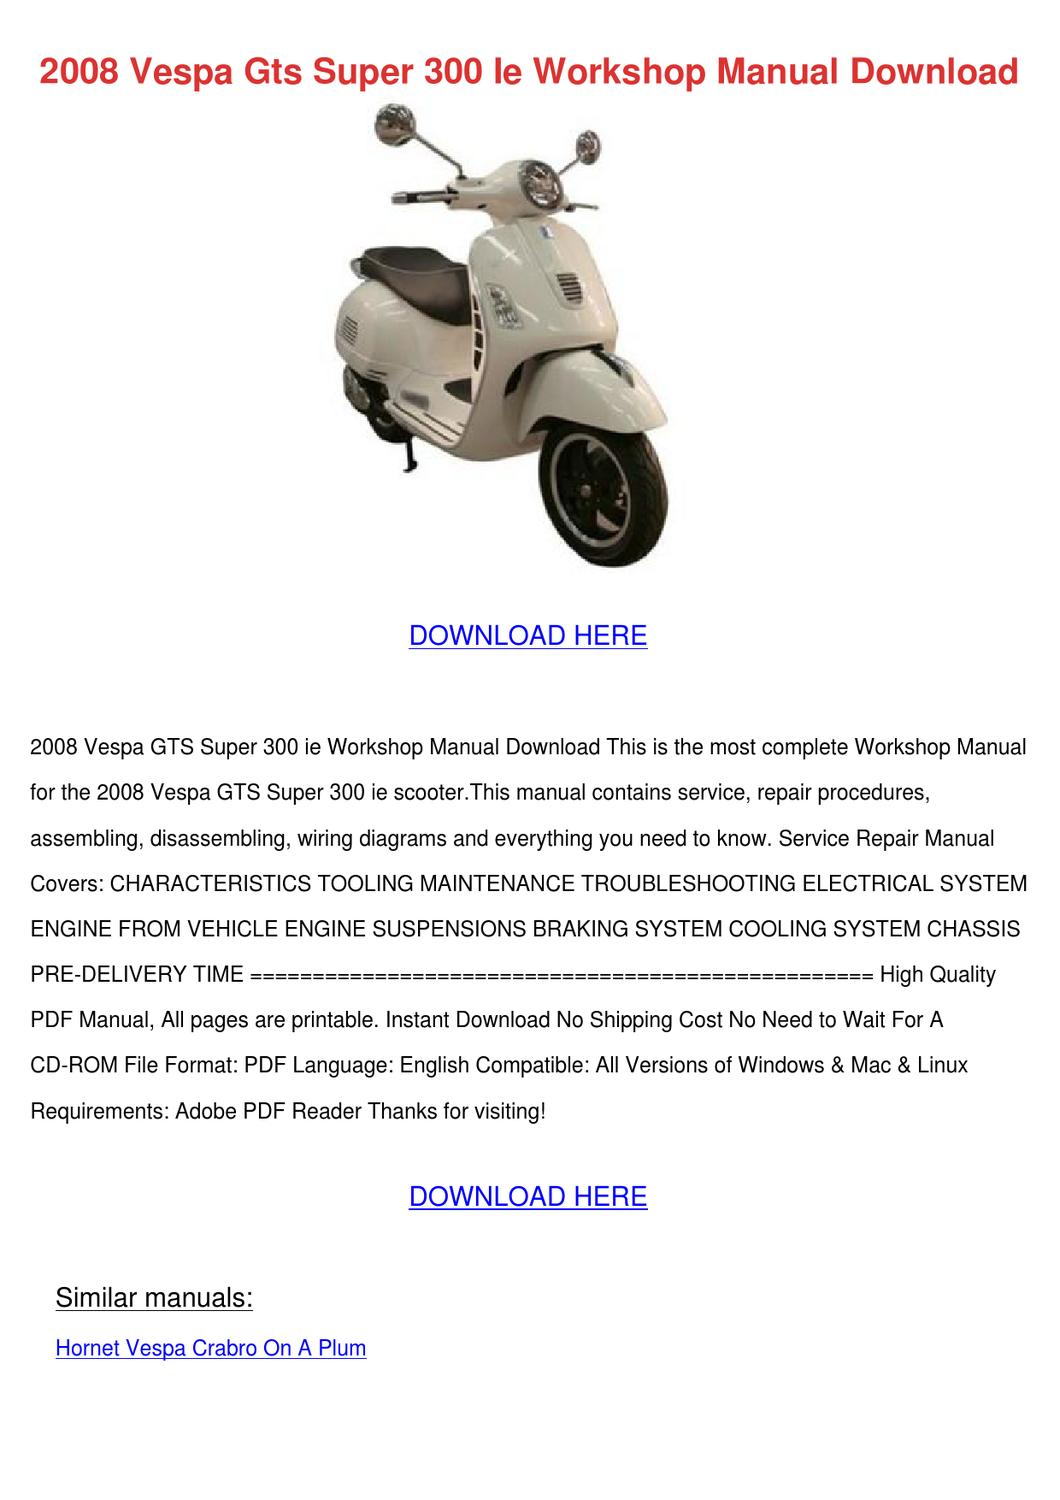 2008 Vespa Gts Super 300 Ie Workshop Manual D by MarceloMast ... on